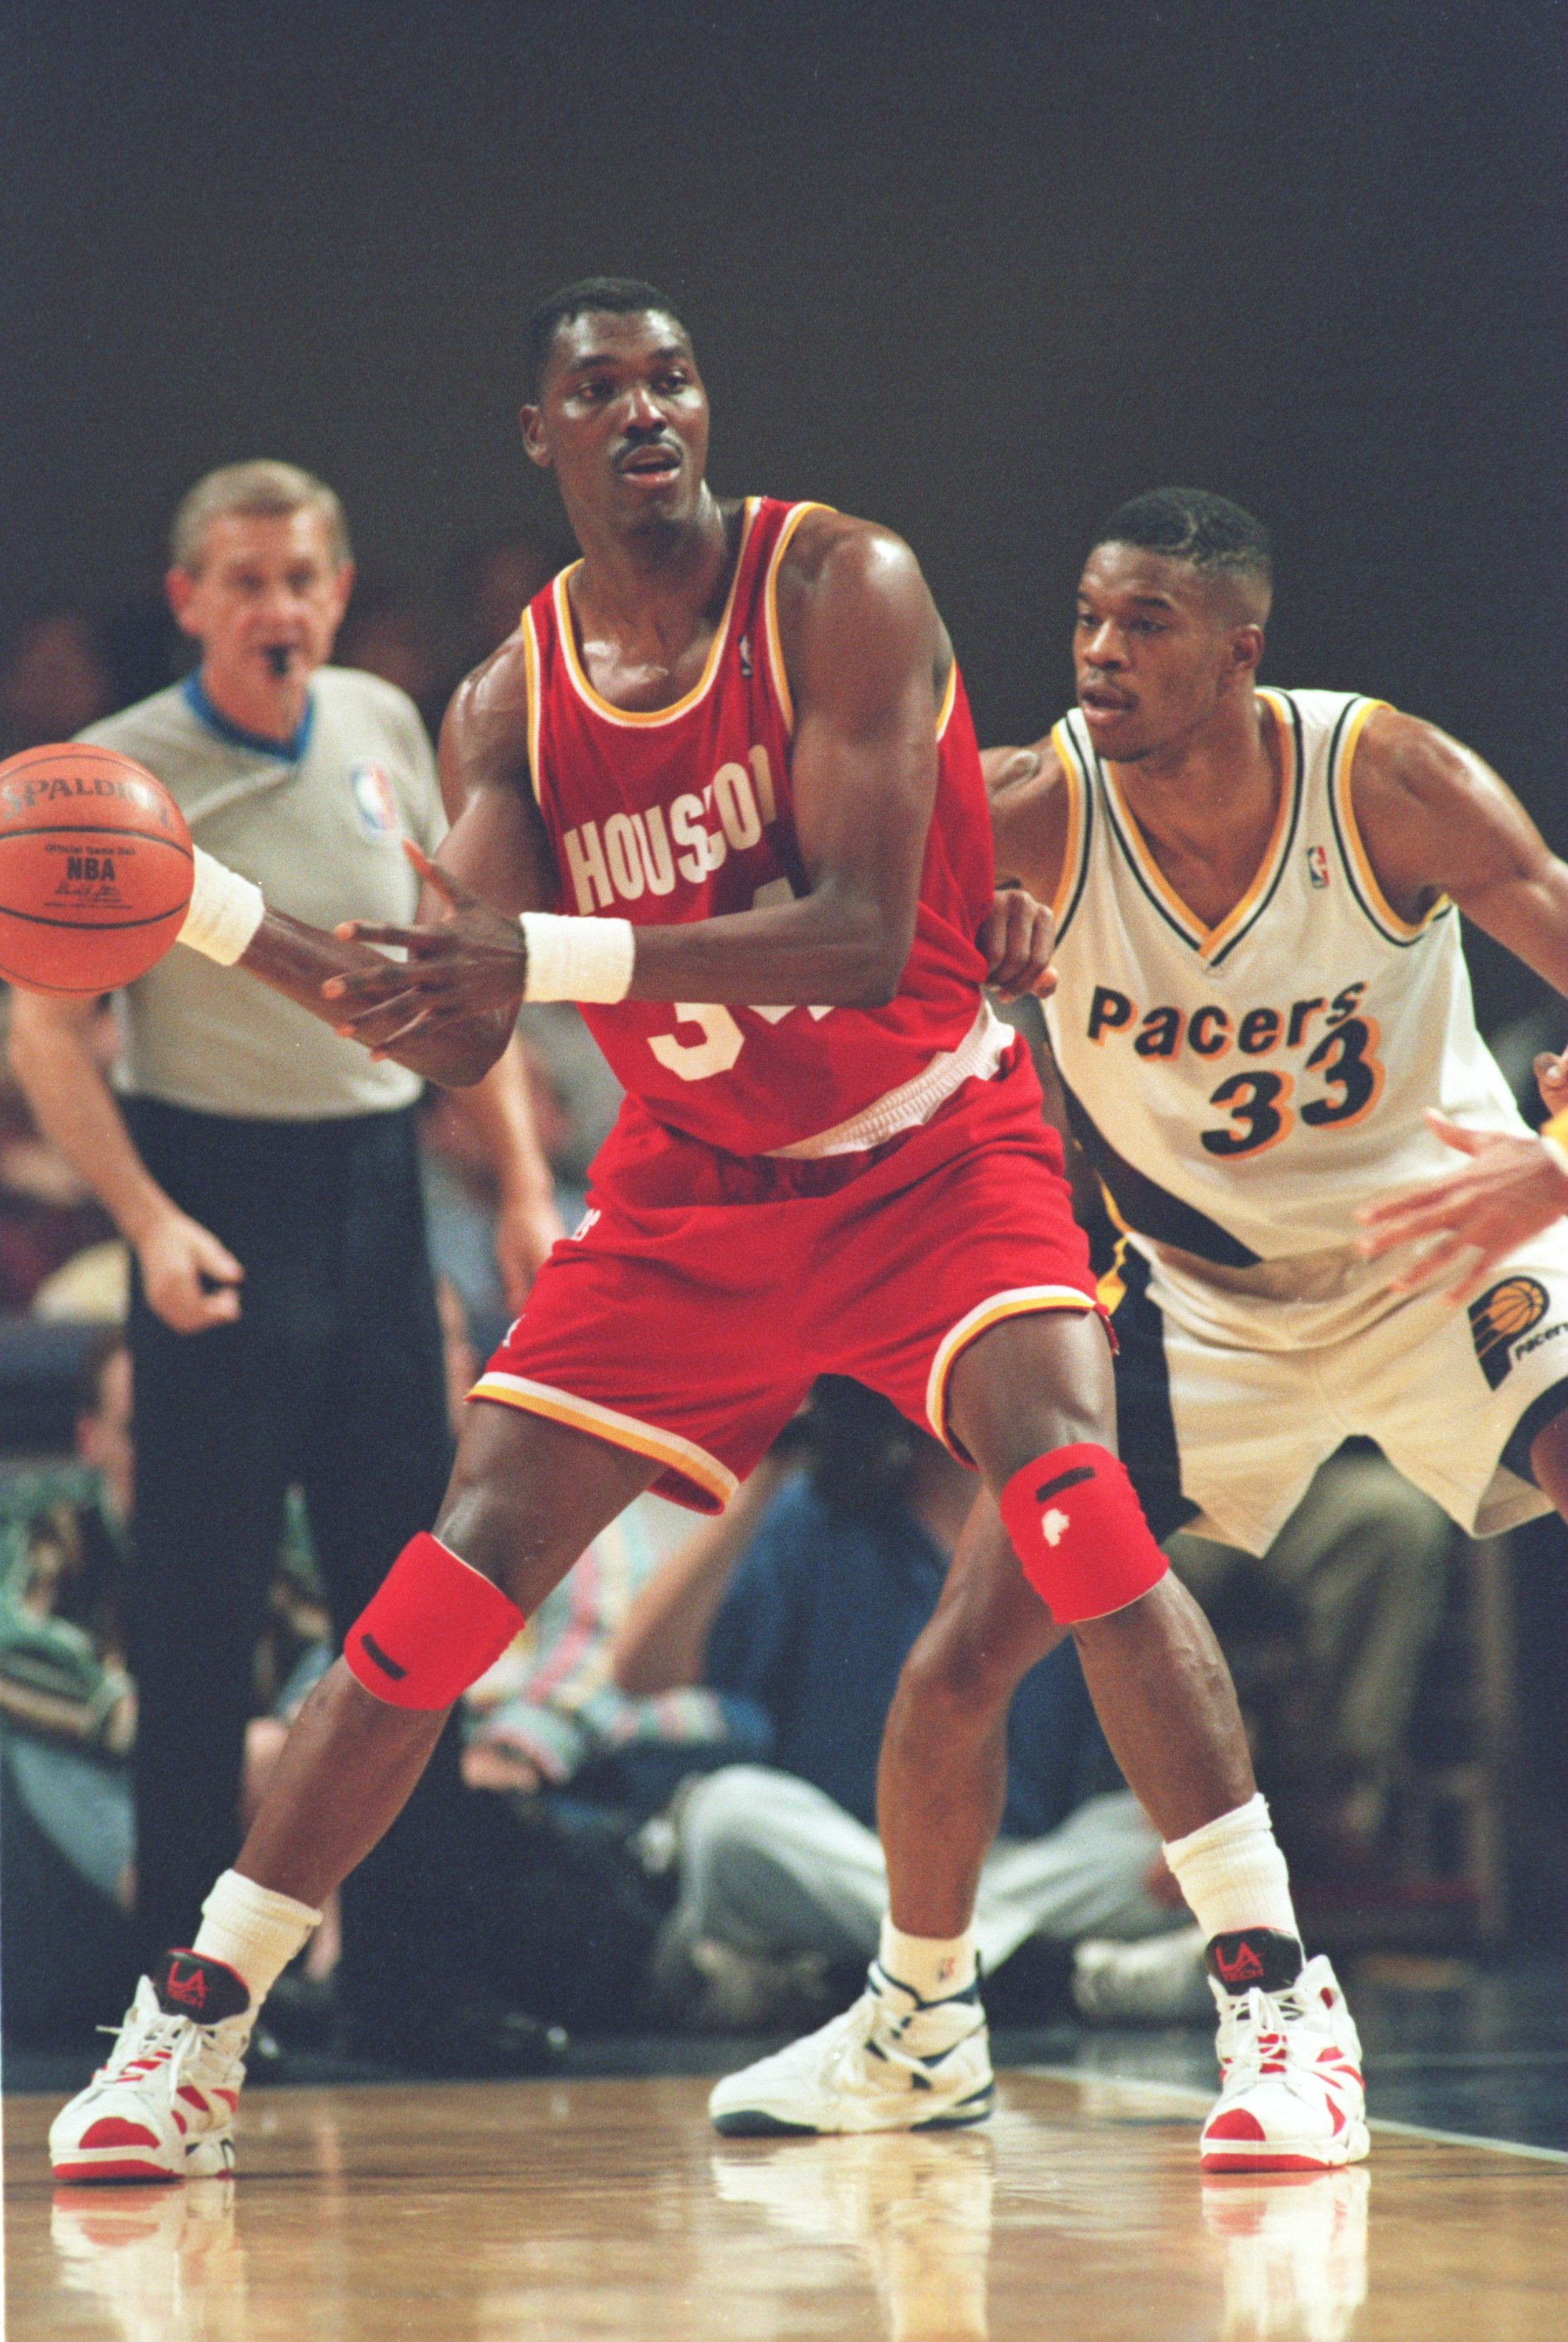 INDIANAPOLIS - NOVEMBER 9: Center Hakeem Olajuwon #34 of the Houston Rockets backs into Antonio Davis #33 of the Indiana Pacers in an attempt to gain post position during their game on November 9, 1994 at Market Square Arena in Indianapolis, Indiana. The